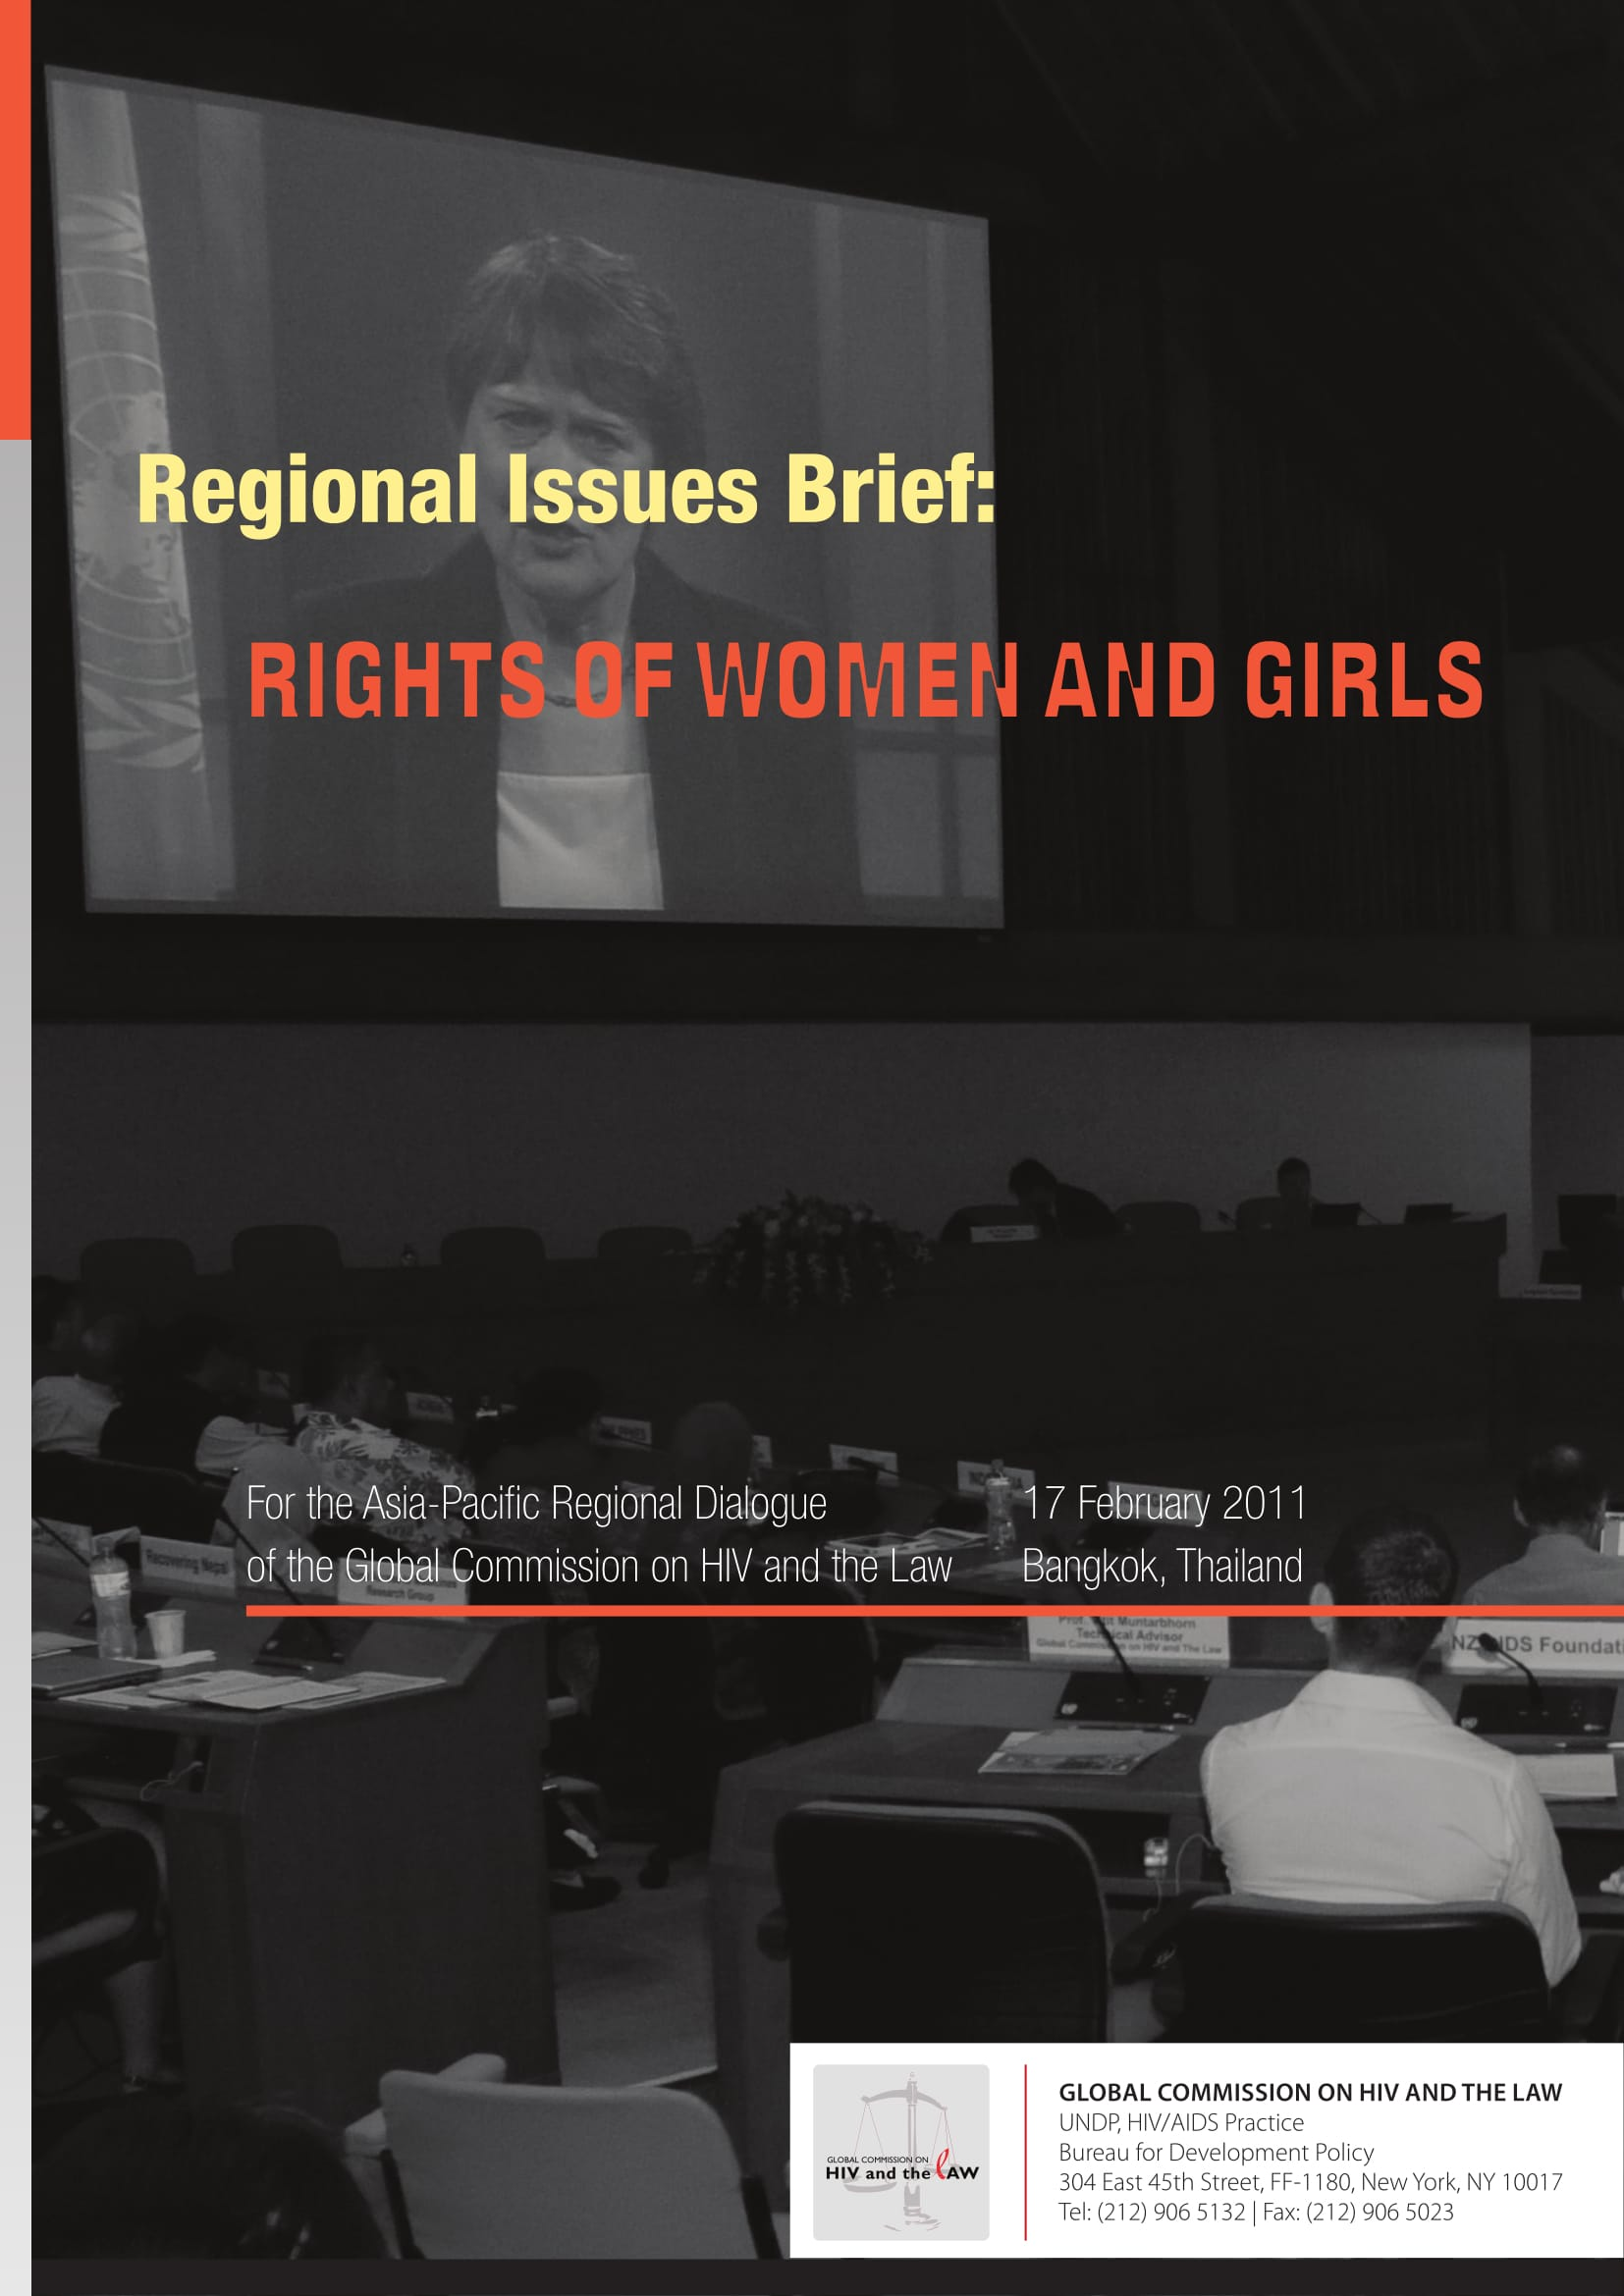 Regional issues brief: Rights of women and girls